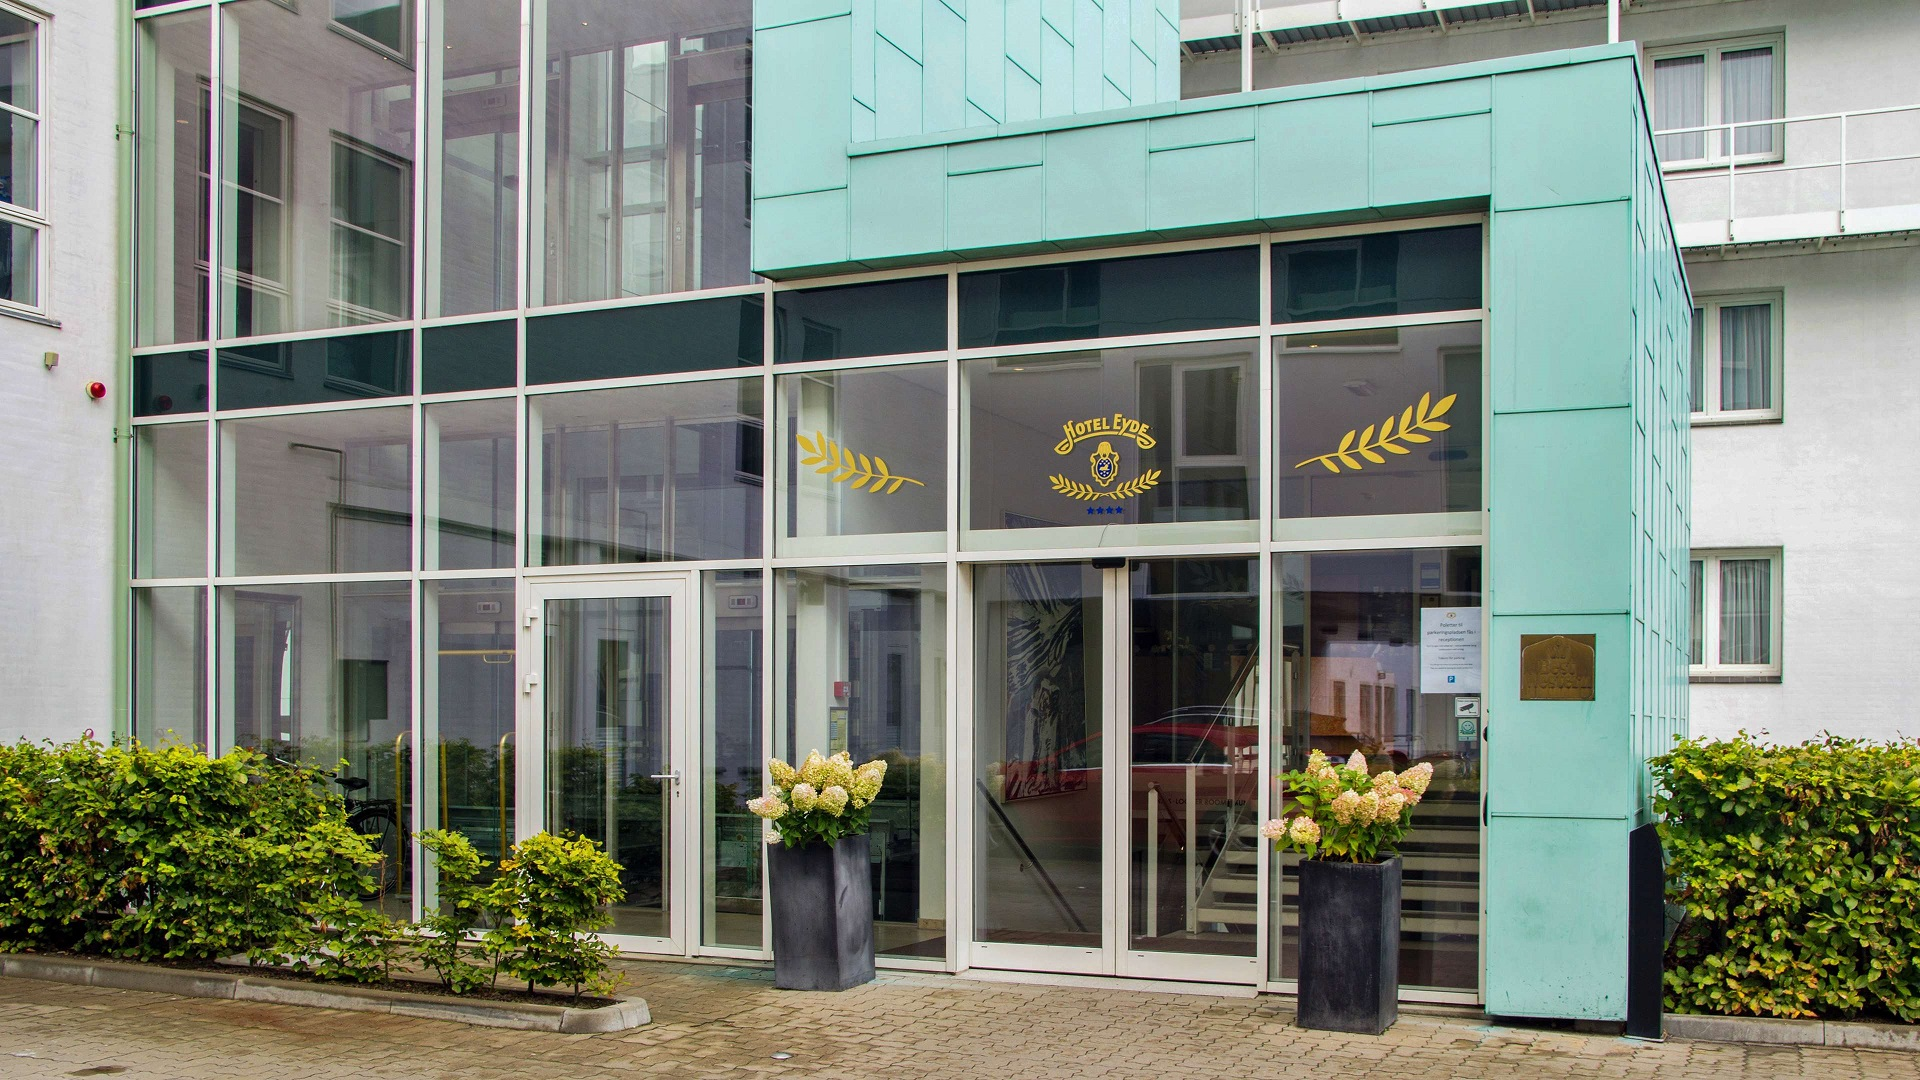 Best Western Plus Hotel Eyde | Golf i Herning